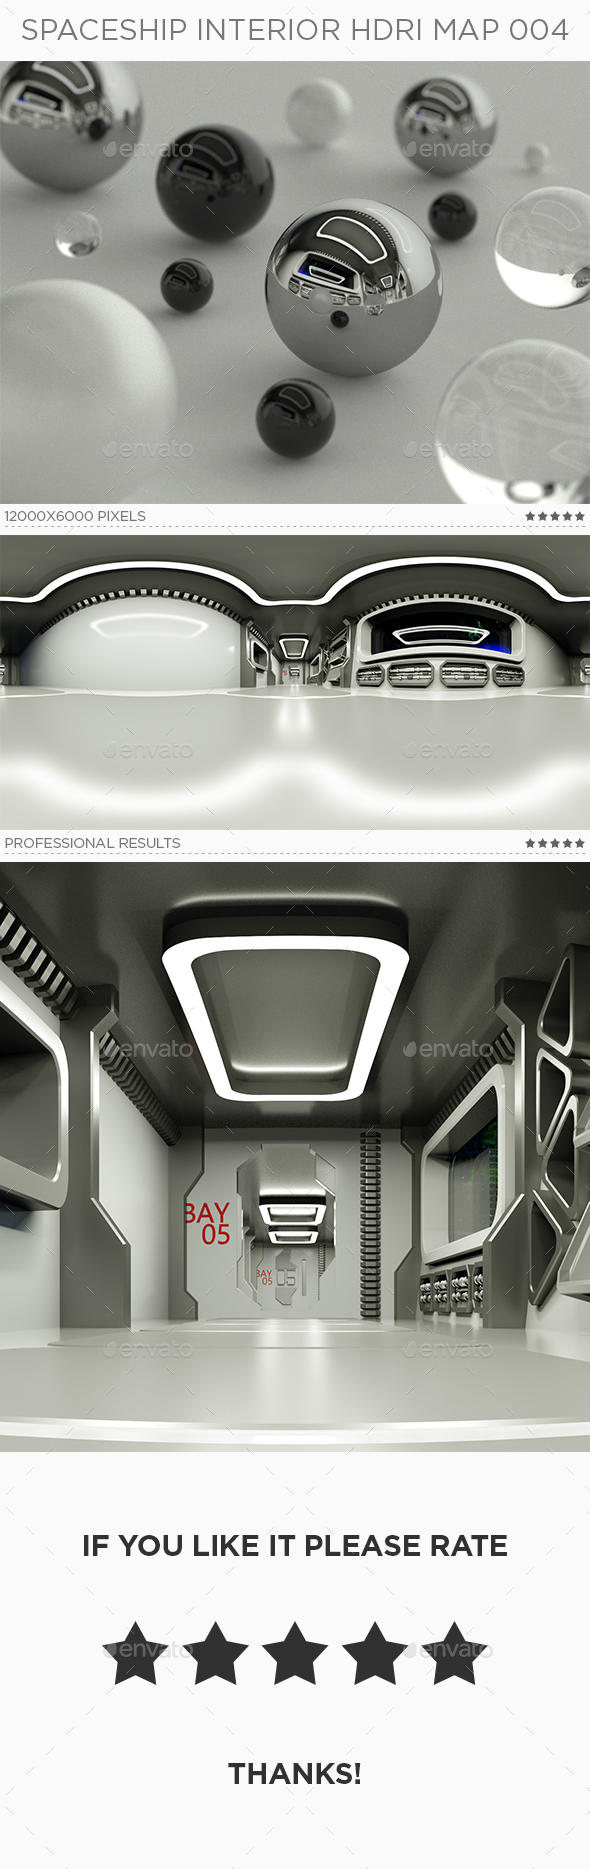 Spaceship Interior HDRi Map 004 - 3DOcean Item for Sale